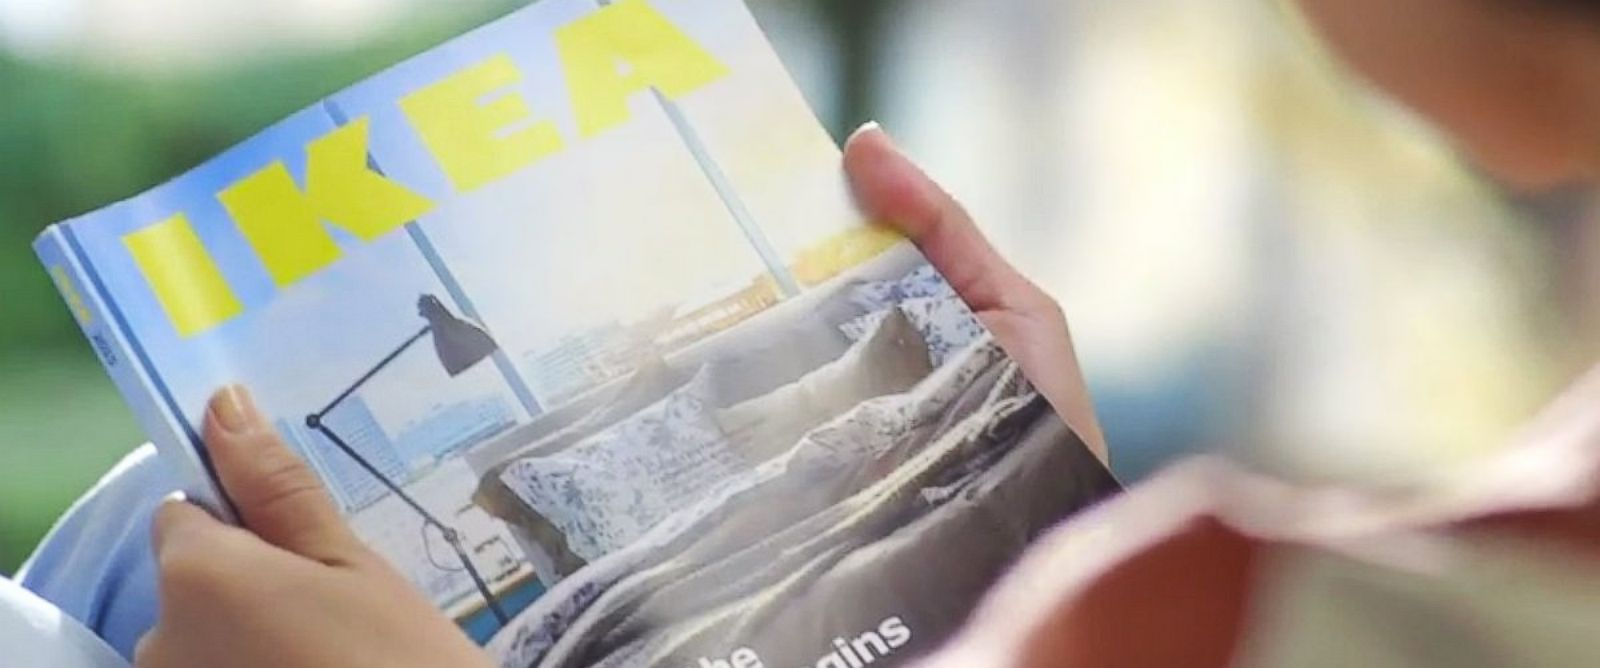 "PHOTO: The 2015 IKEA Catalogue is seen in this still from a YouTube video titled ""Experience the power of a bookbook."""